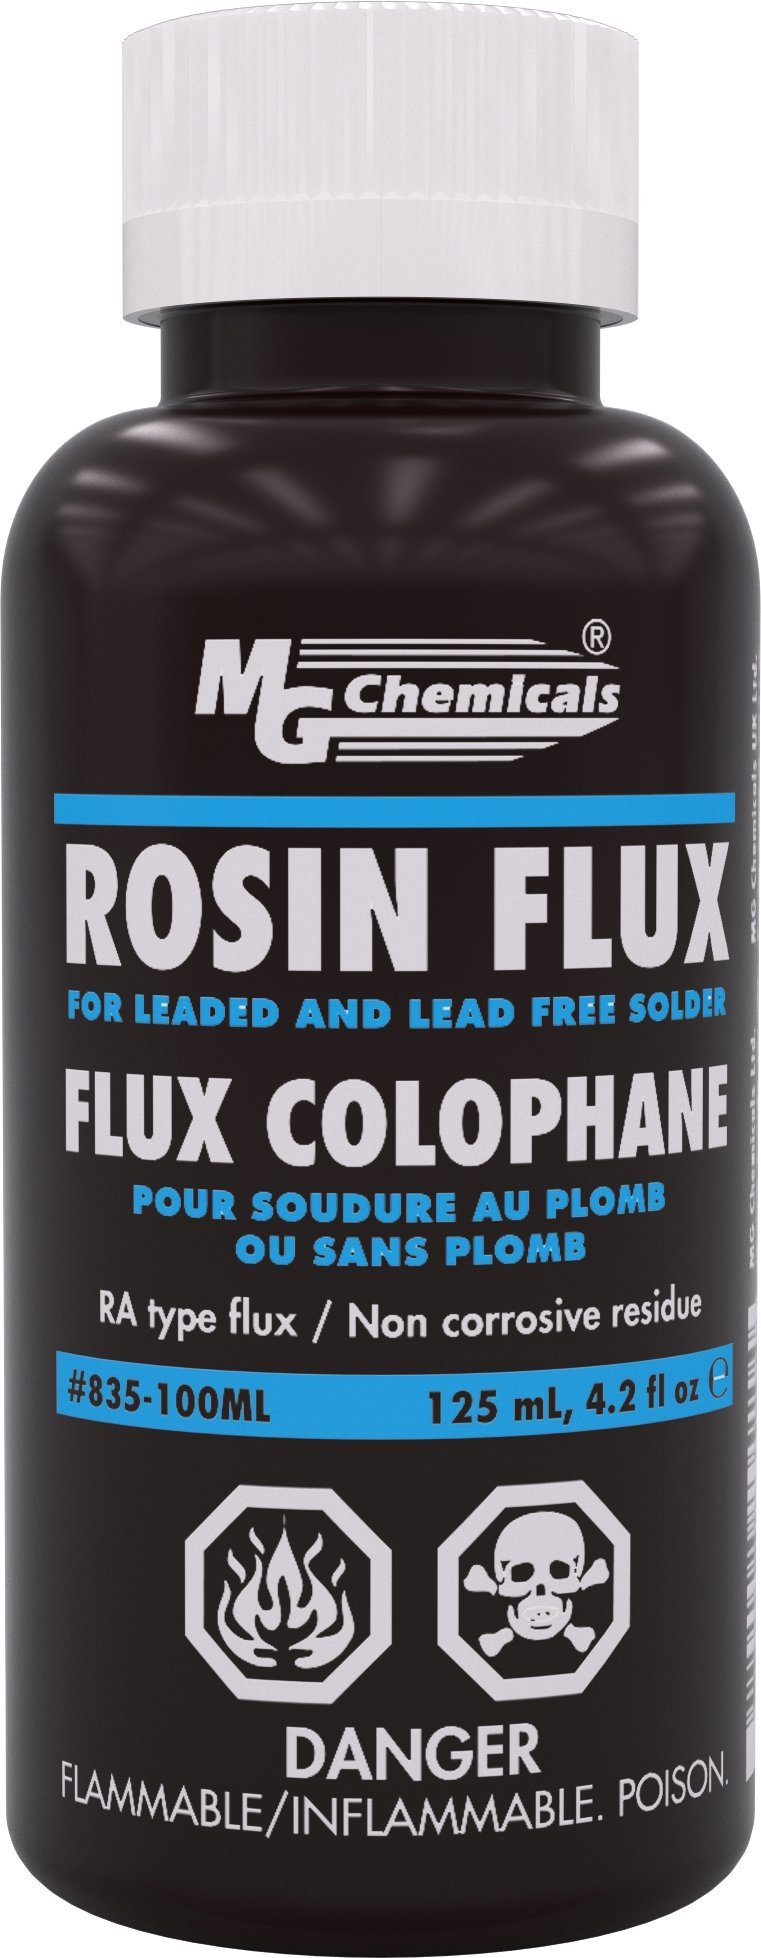 MG Chemicals Liquid Rosin Flux, for Leaded and Lead Free Solder, 125 ml Bottle by MG Chemicals